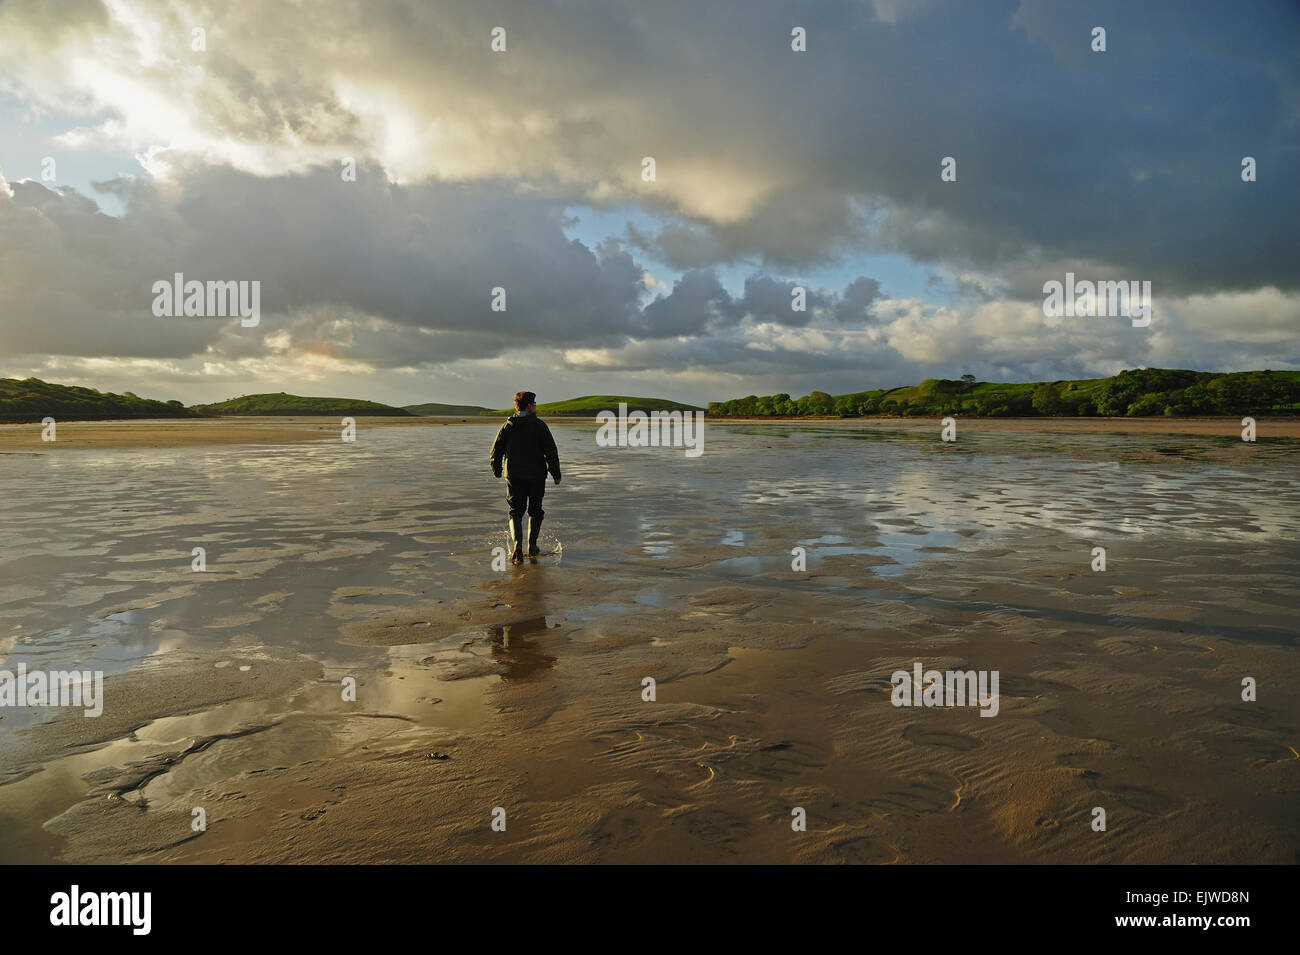 Ireland, County Mayo, Clew Bay, Rear view of man standing water in rubber boots, clouds in sky - Stock Image